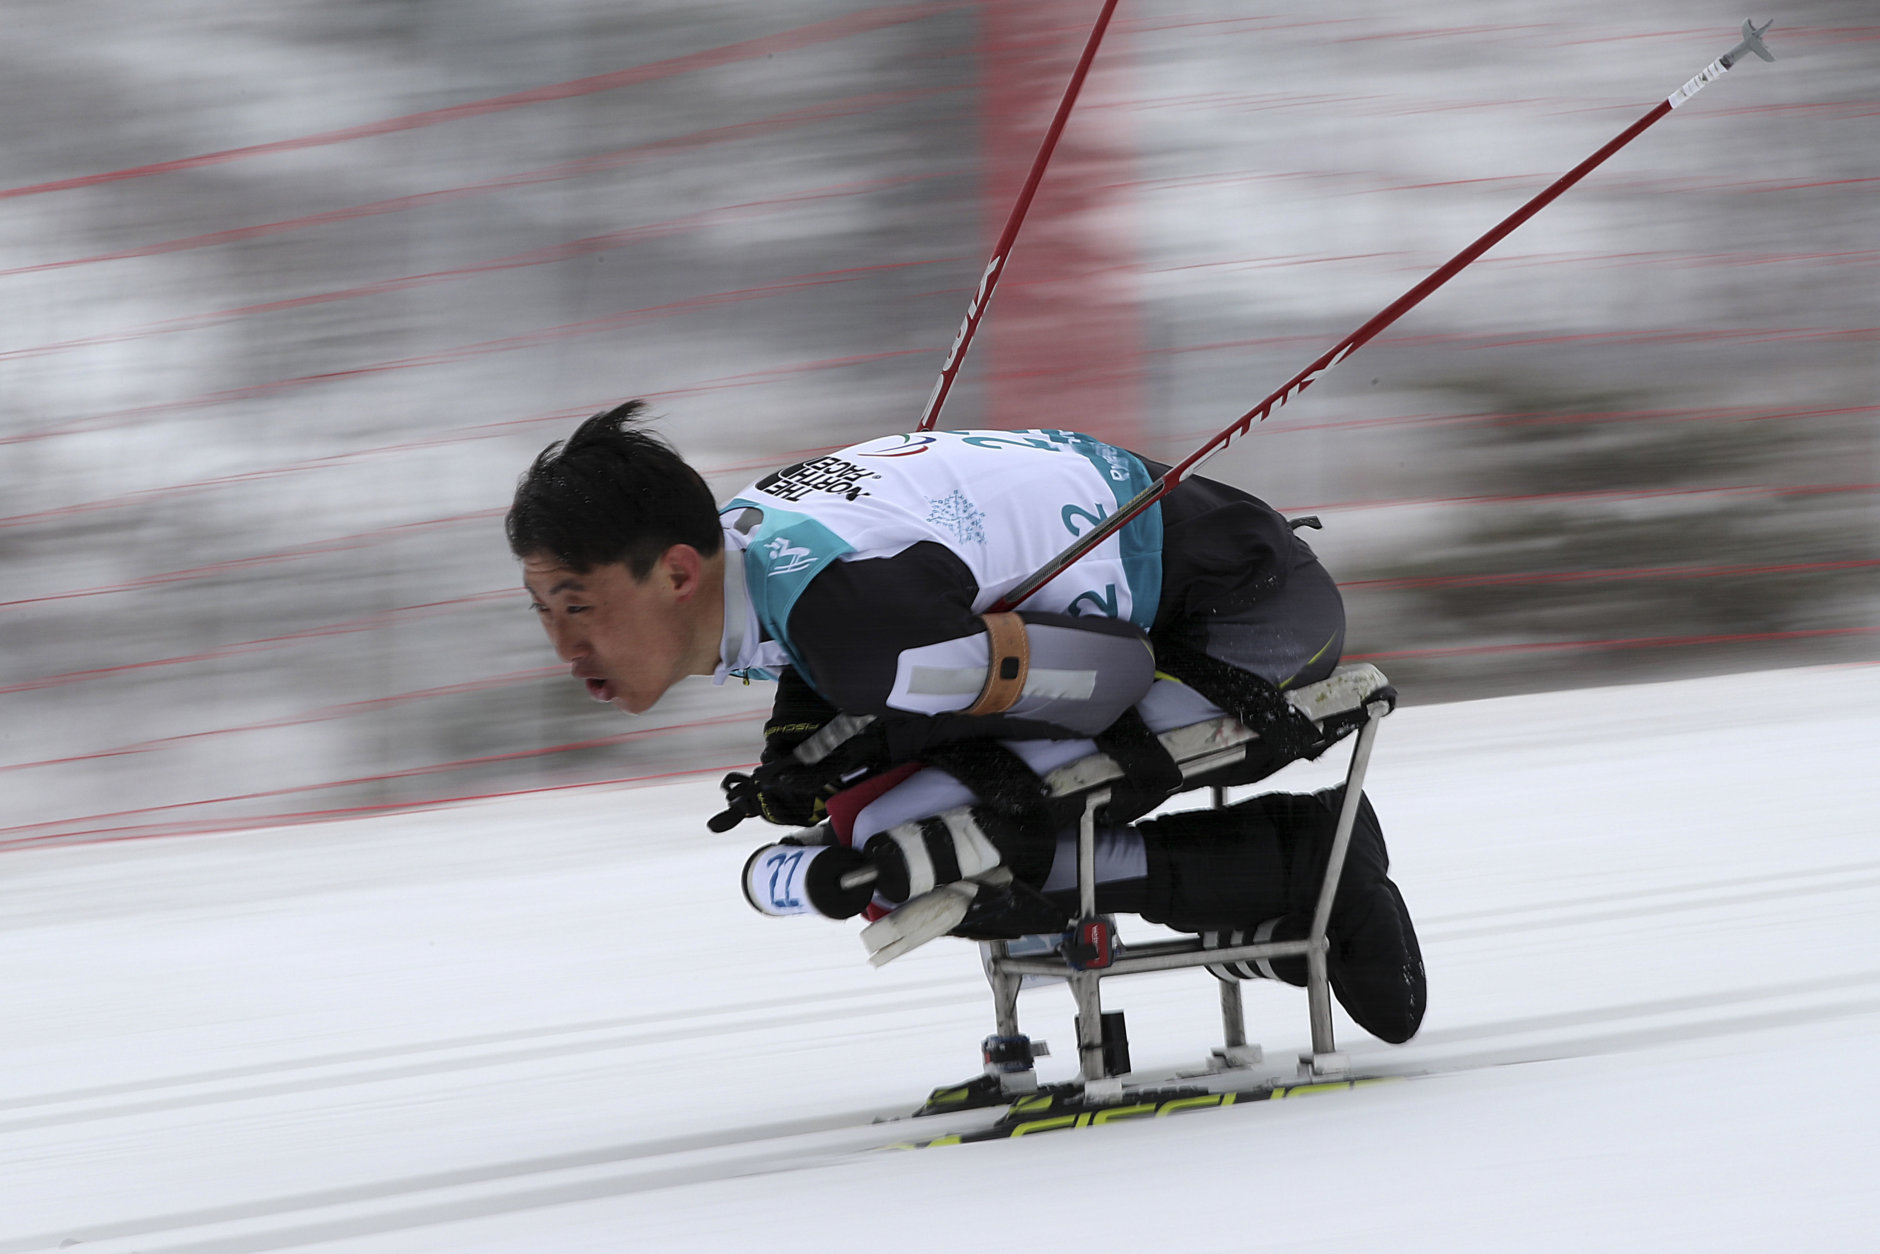 Gao Xiaoming of China competes in the Biathlon Men's 15km Sitting event during the 2018 Winter Paralympics at the Alpensia Biathlon Centre in Pyeongchang, South Korea, Friday, March 16, 2018. (AP Photo/Ng Han Guan)